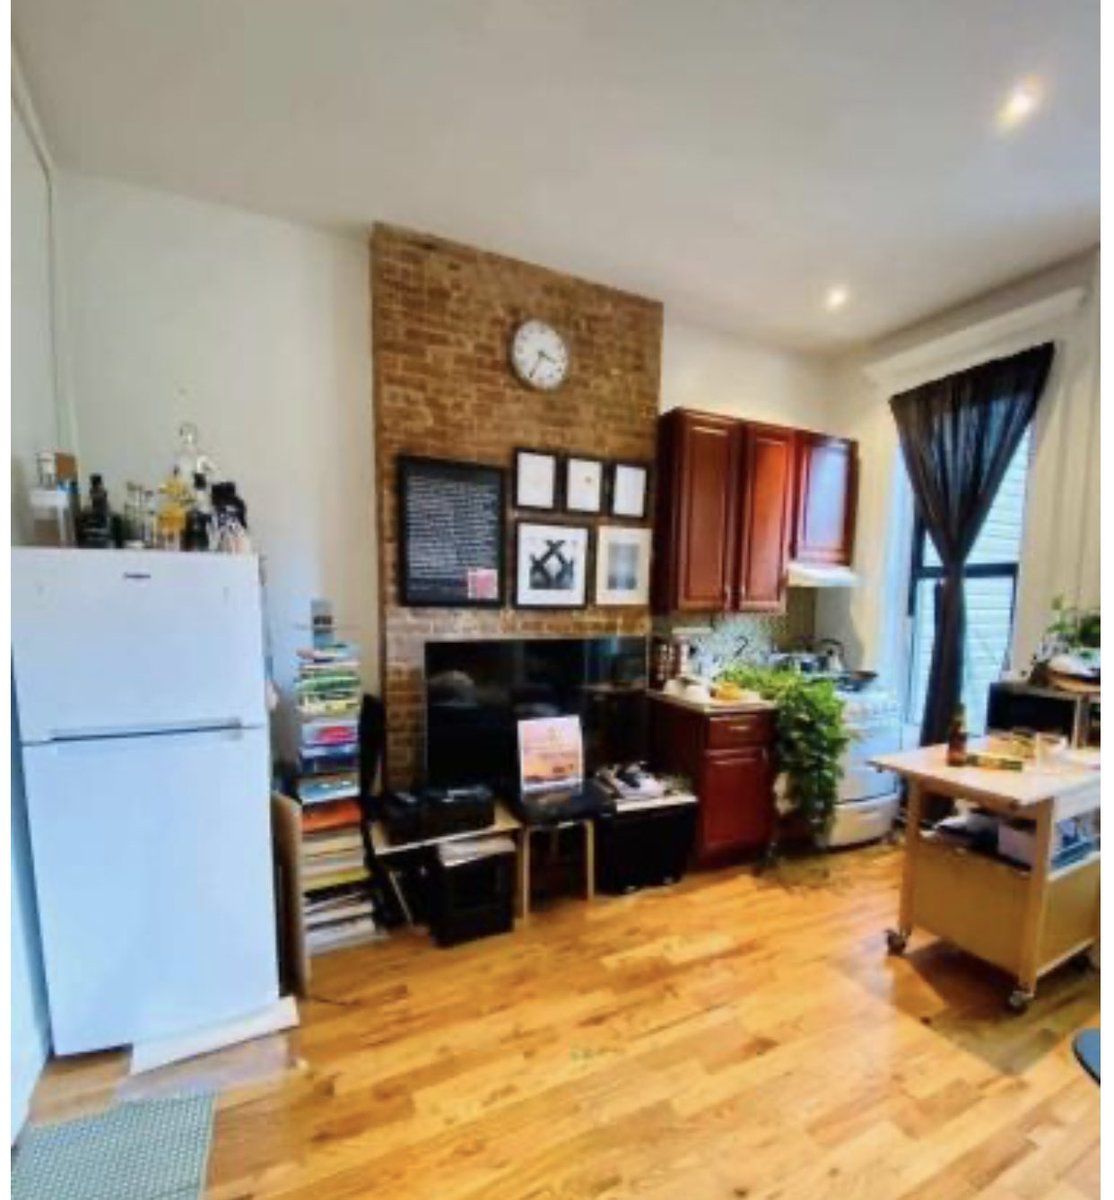 For 1700 you can live the good NY life like THIS!!  #gentrification pic.twitter.com/DgbTWGEtxv